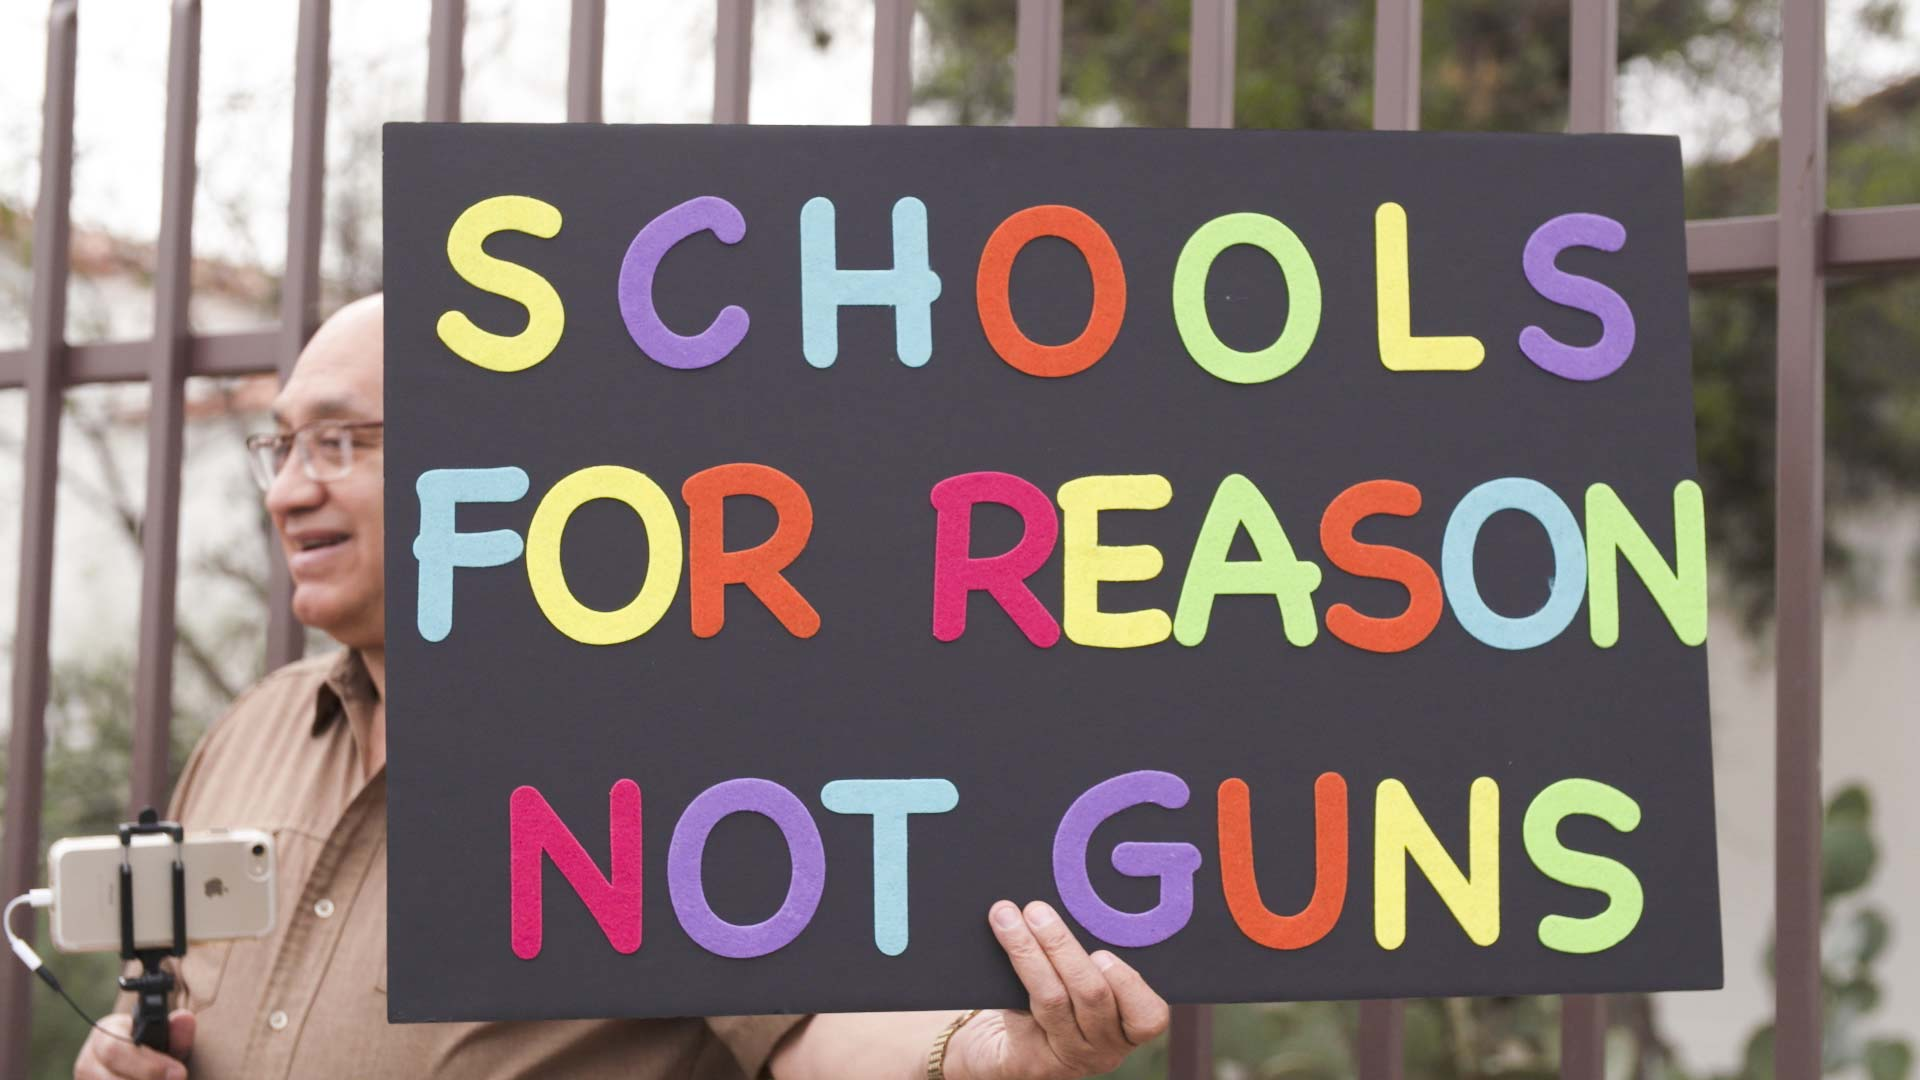 A sign at a Tucson demonstration against gun violence in schools, March 14, 2018.